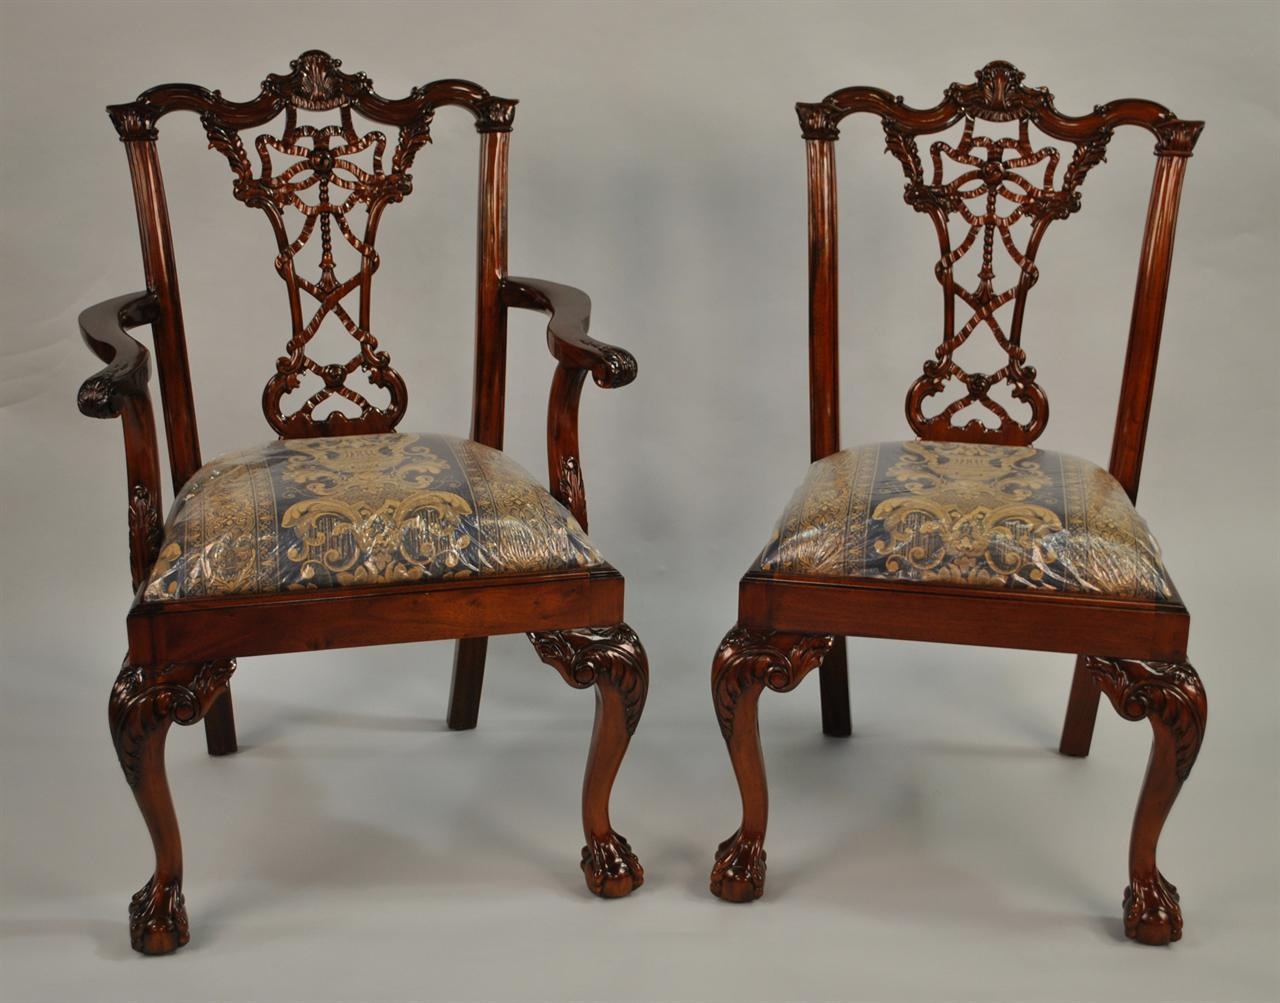 Thomas Chippendale Nostell Priory Dining Chairs - Chippendal Mahogany Dining Chairs, Antique Style High End Chairs